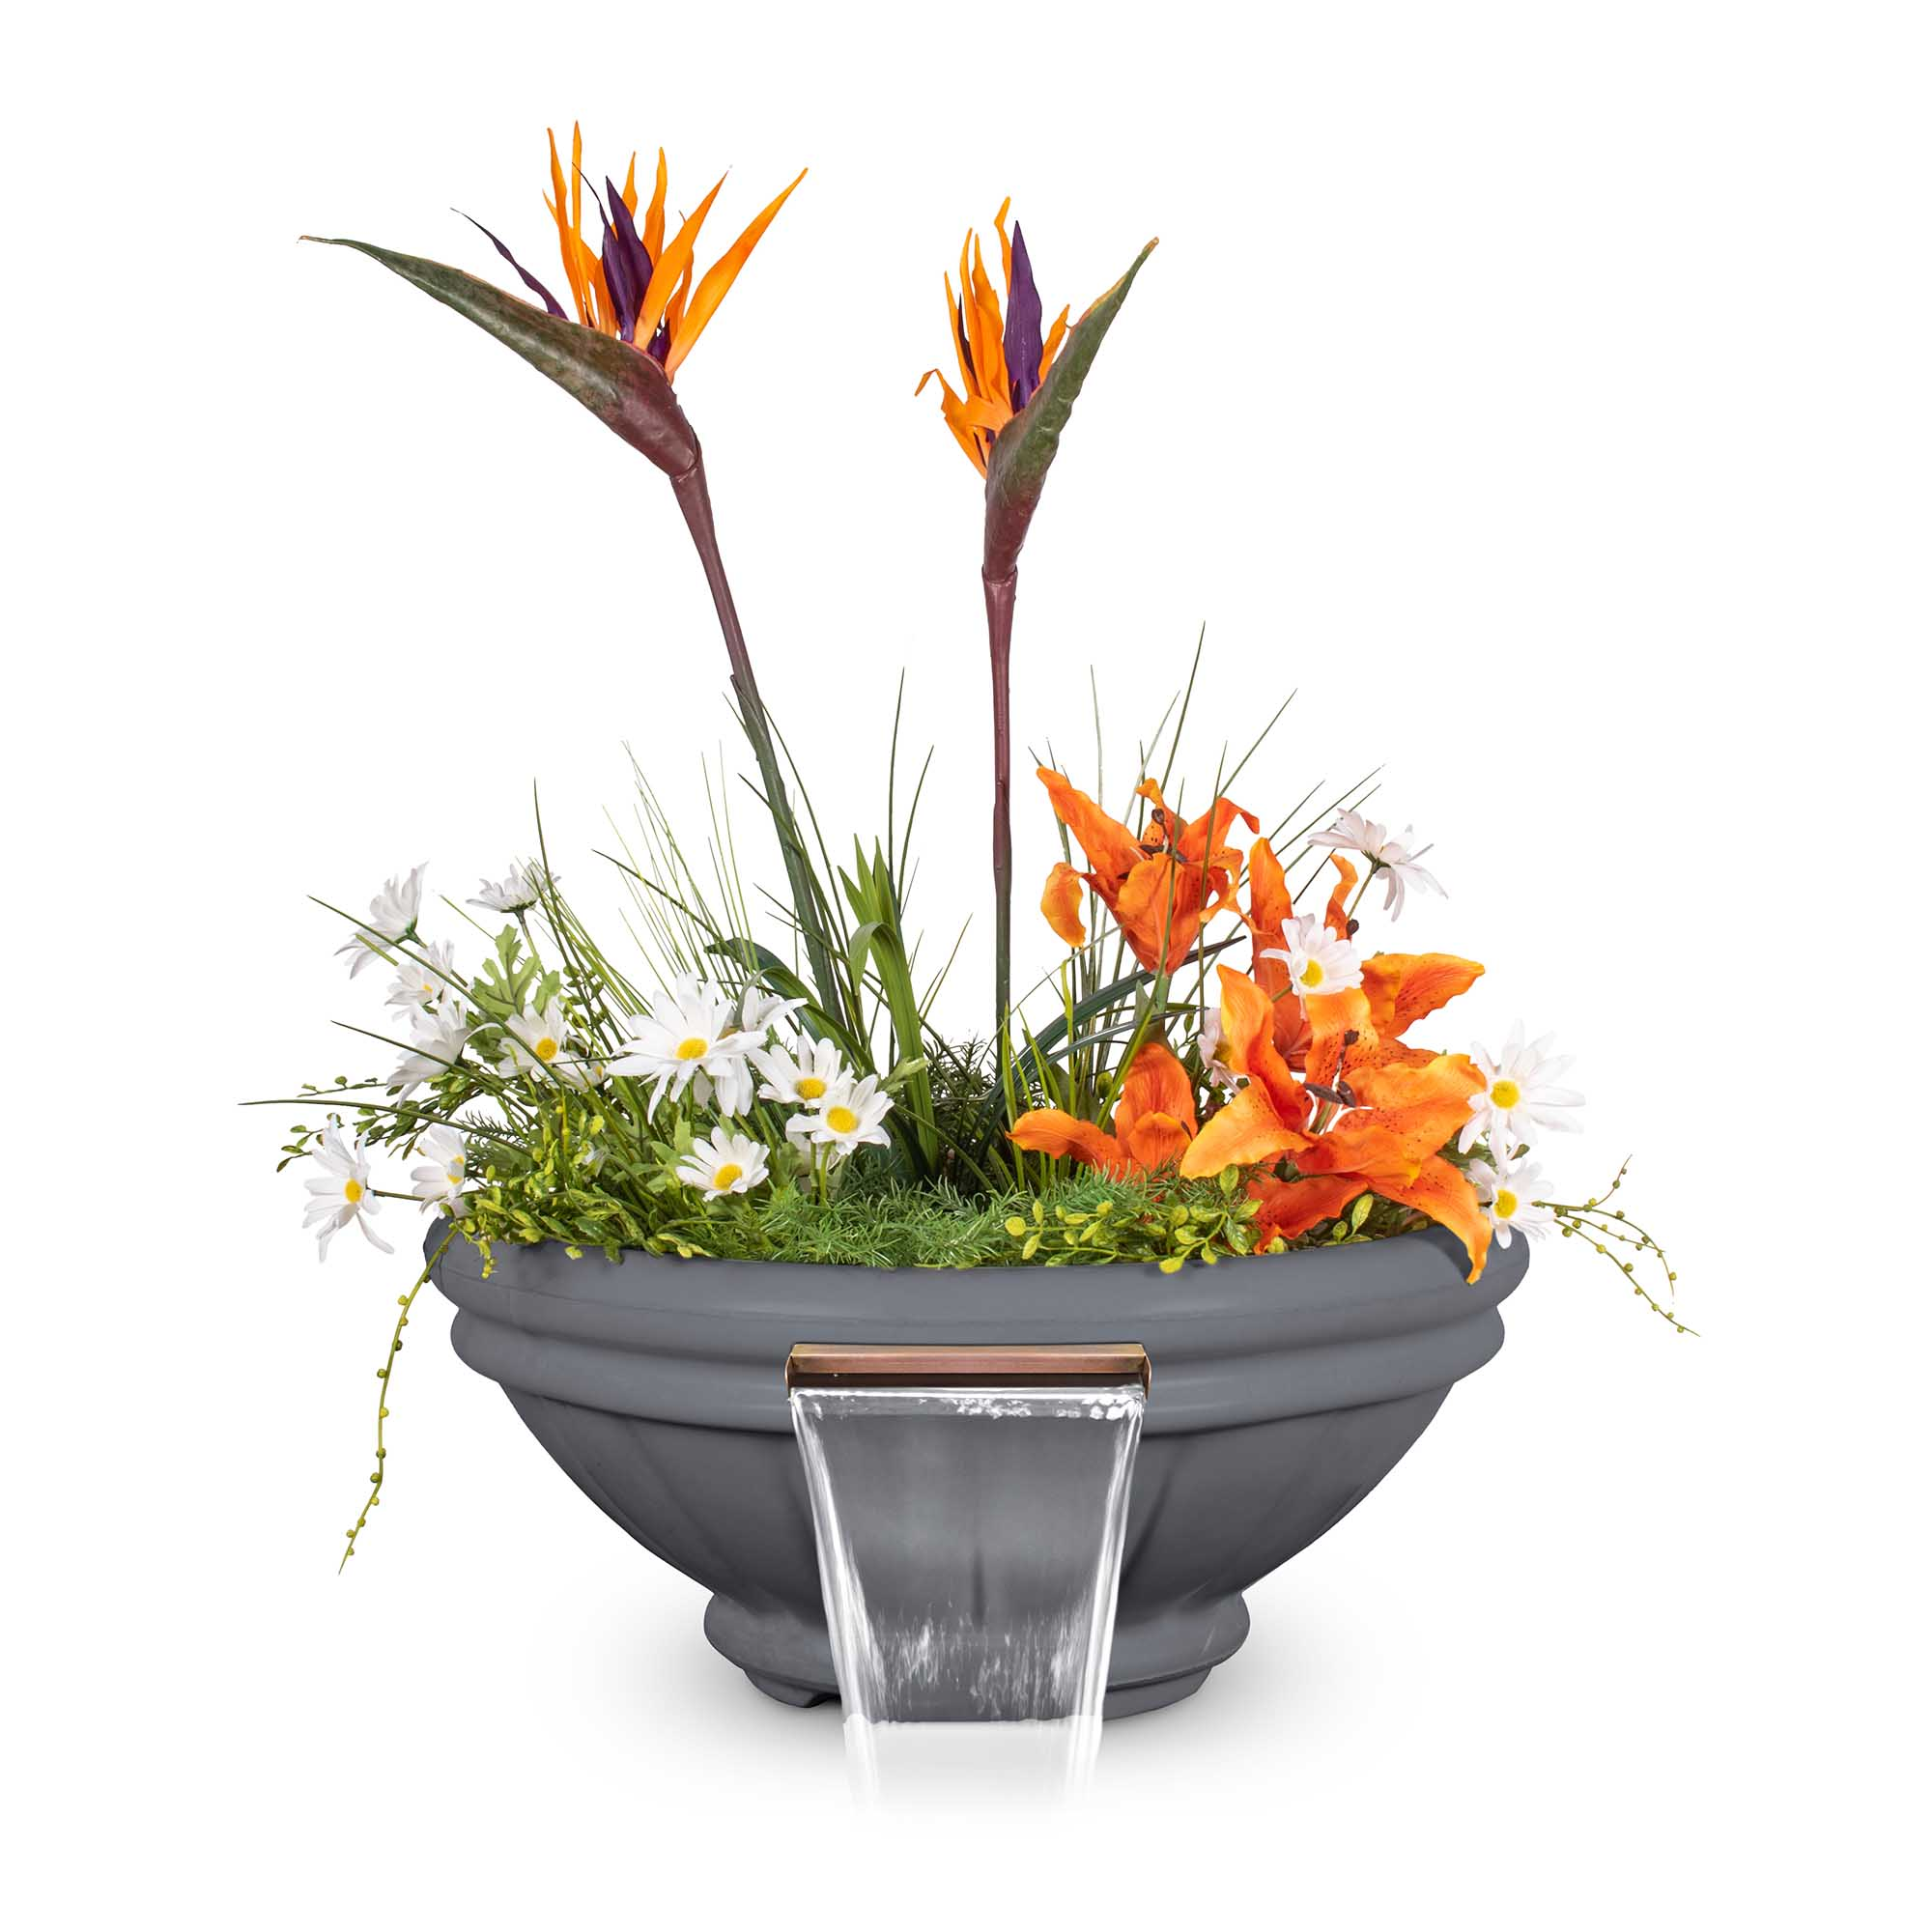 Roma GFRC Planter Water Bowl - Gray